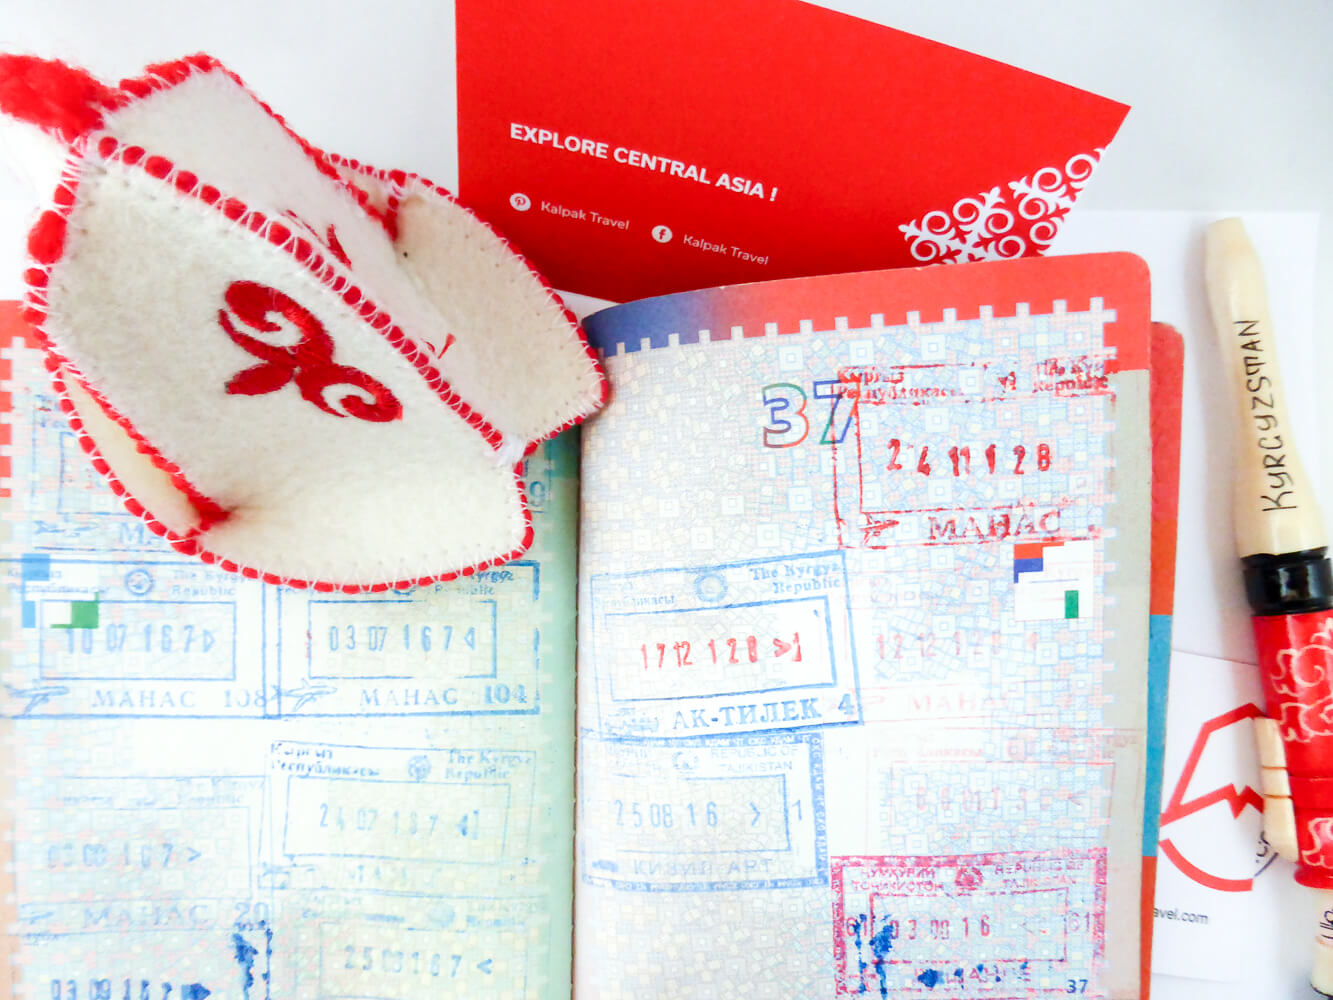 Kalpak Travel passport